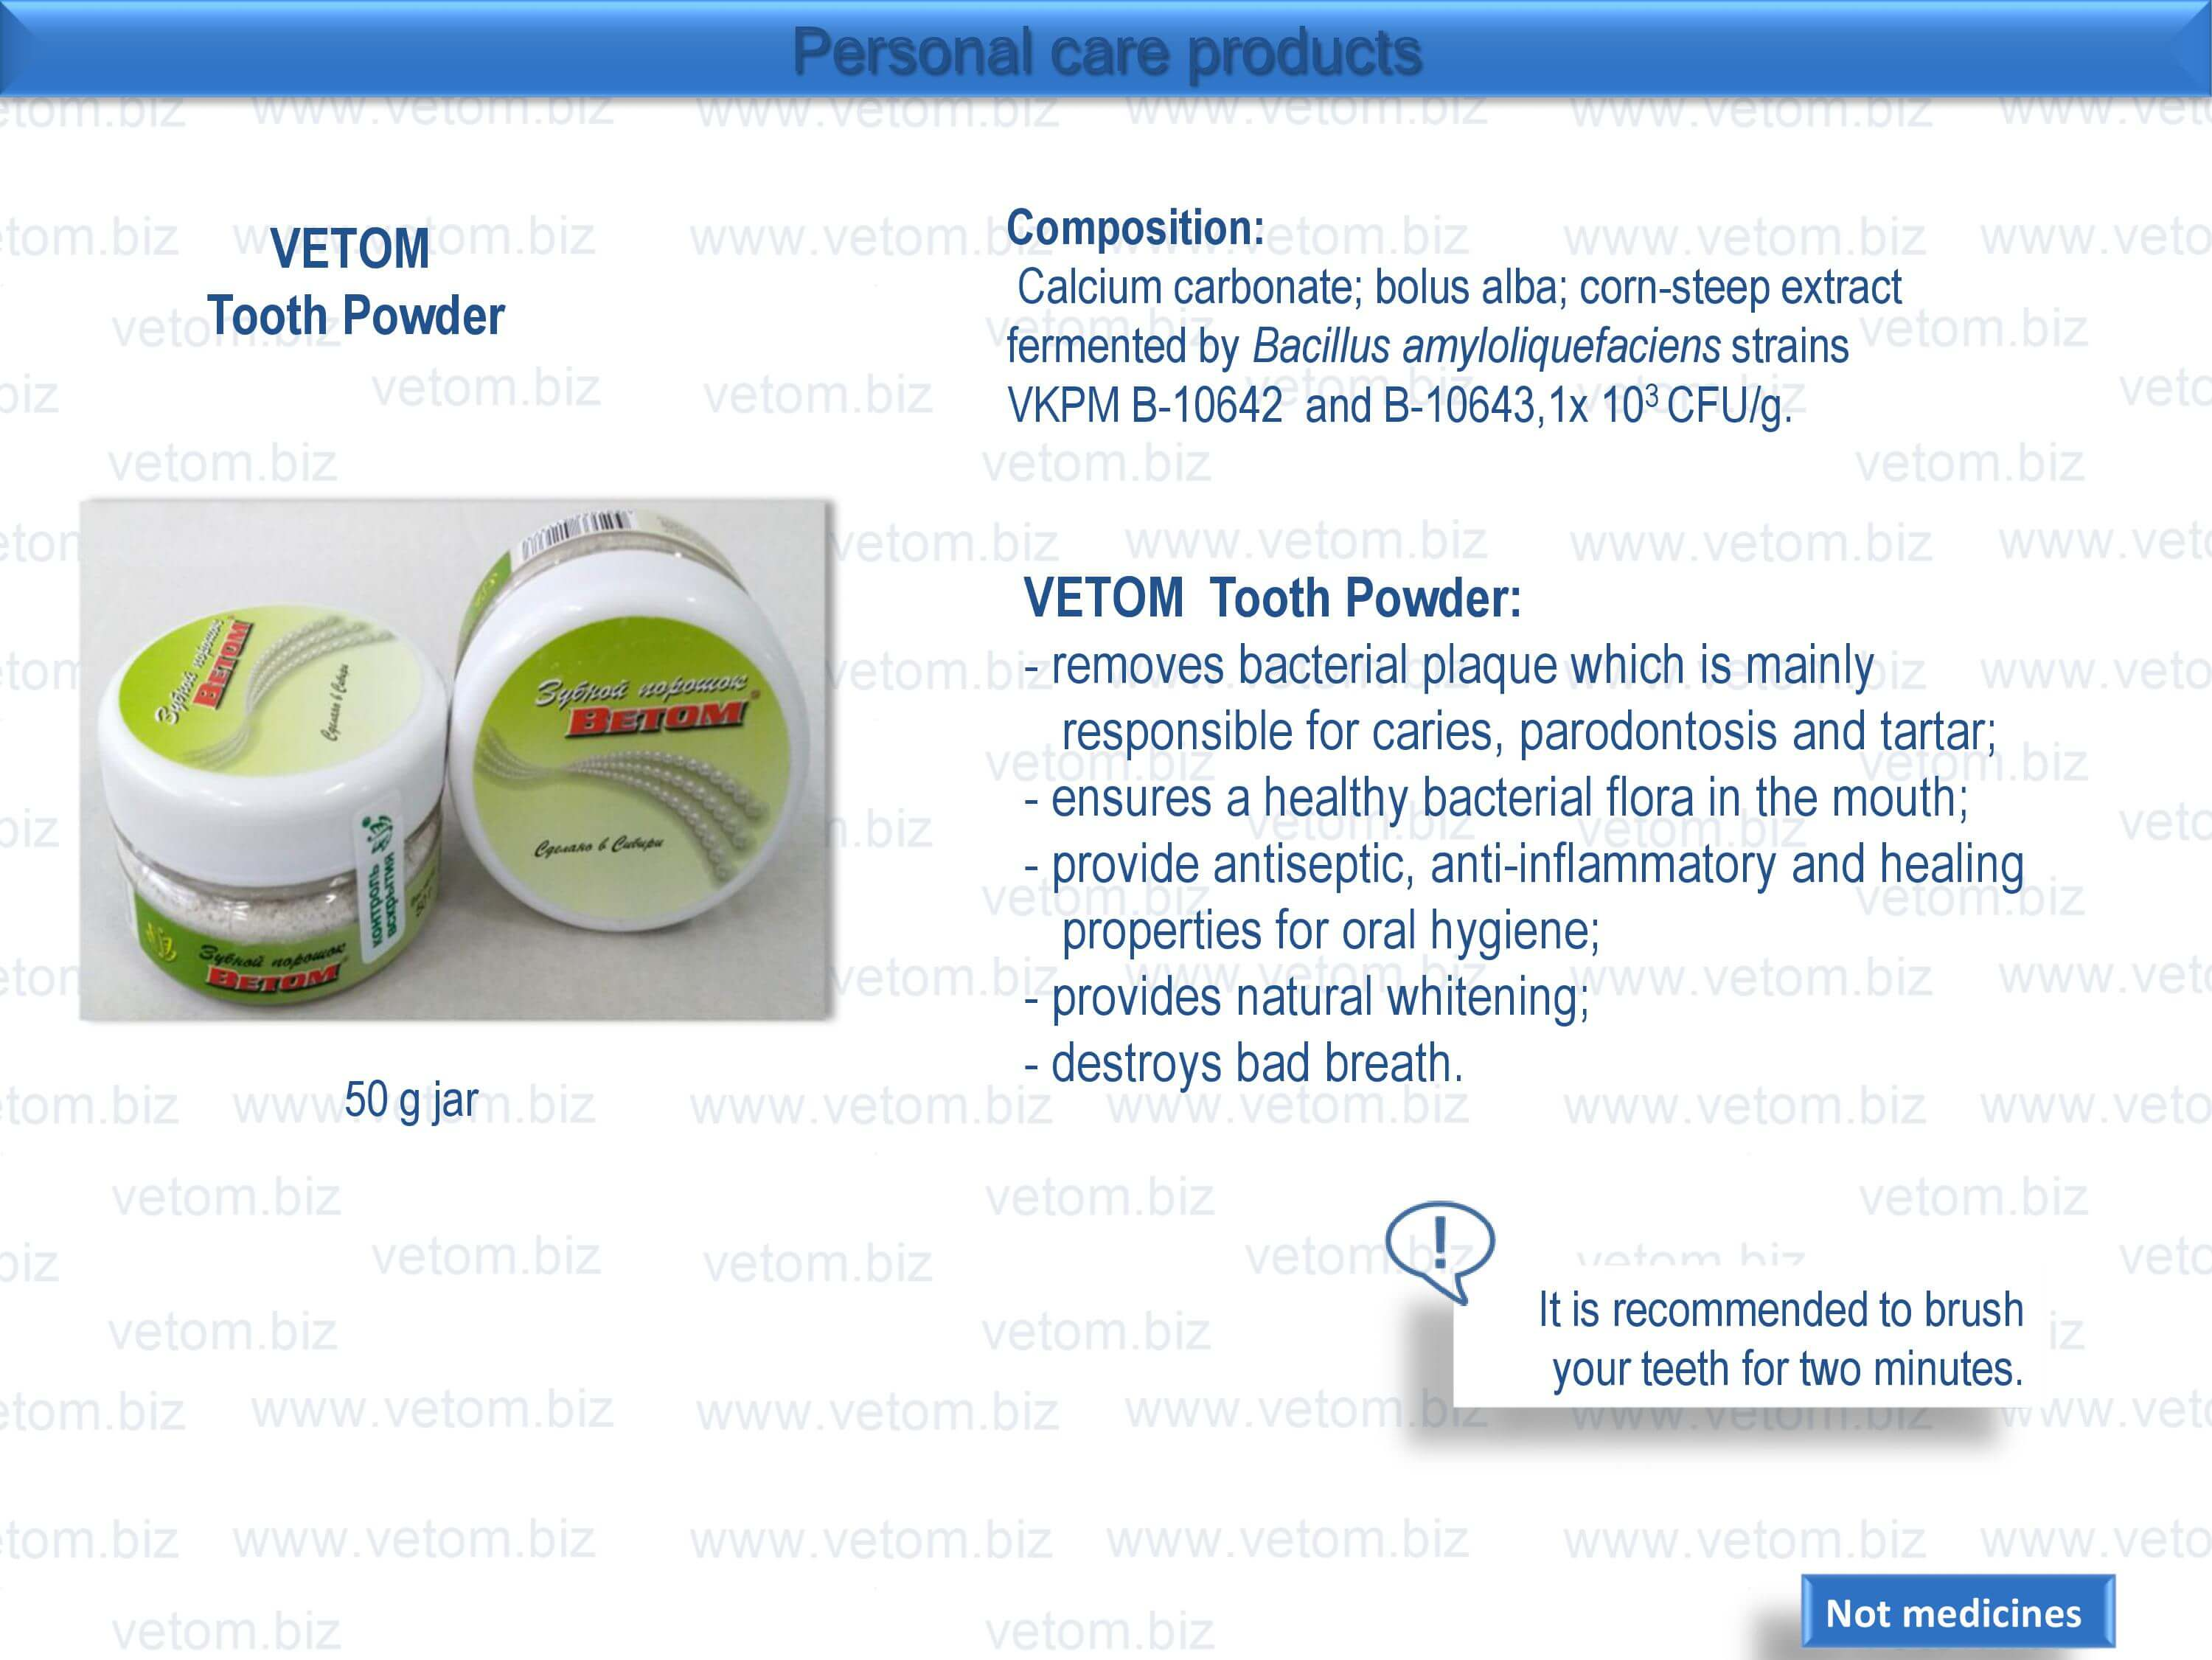 Personal care products - VETOM Tooth Powder